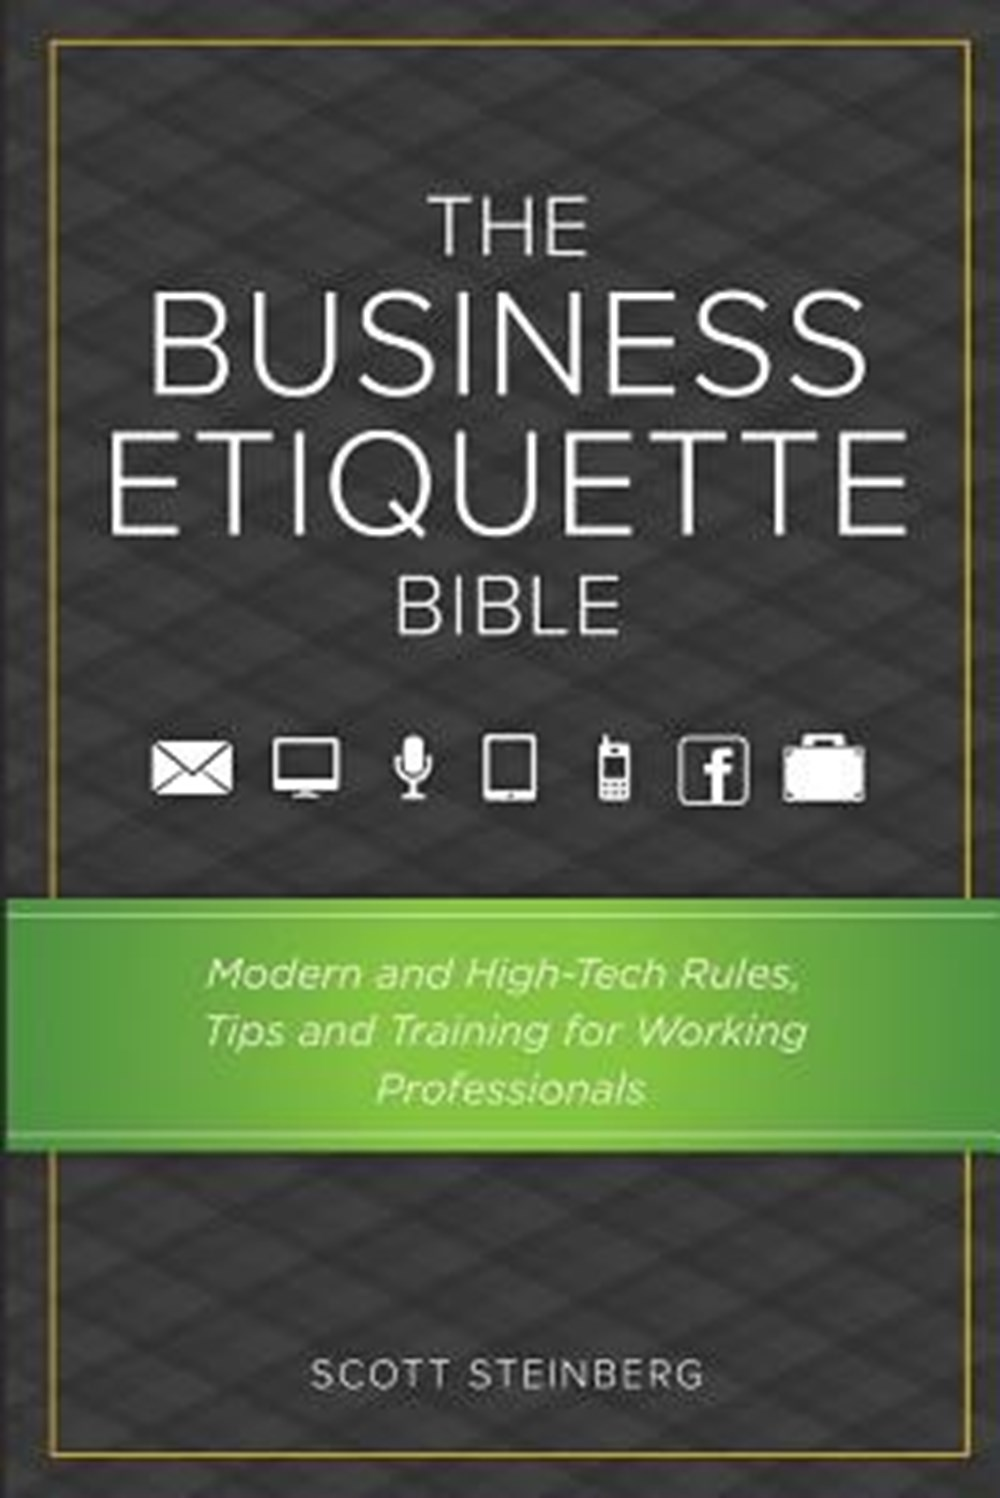 Business Etiquette Bible Modern and High-Tech Rules, Tips & Training for Working Professionals